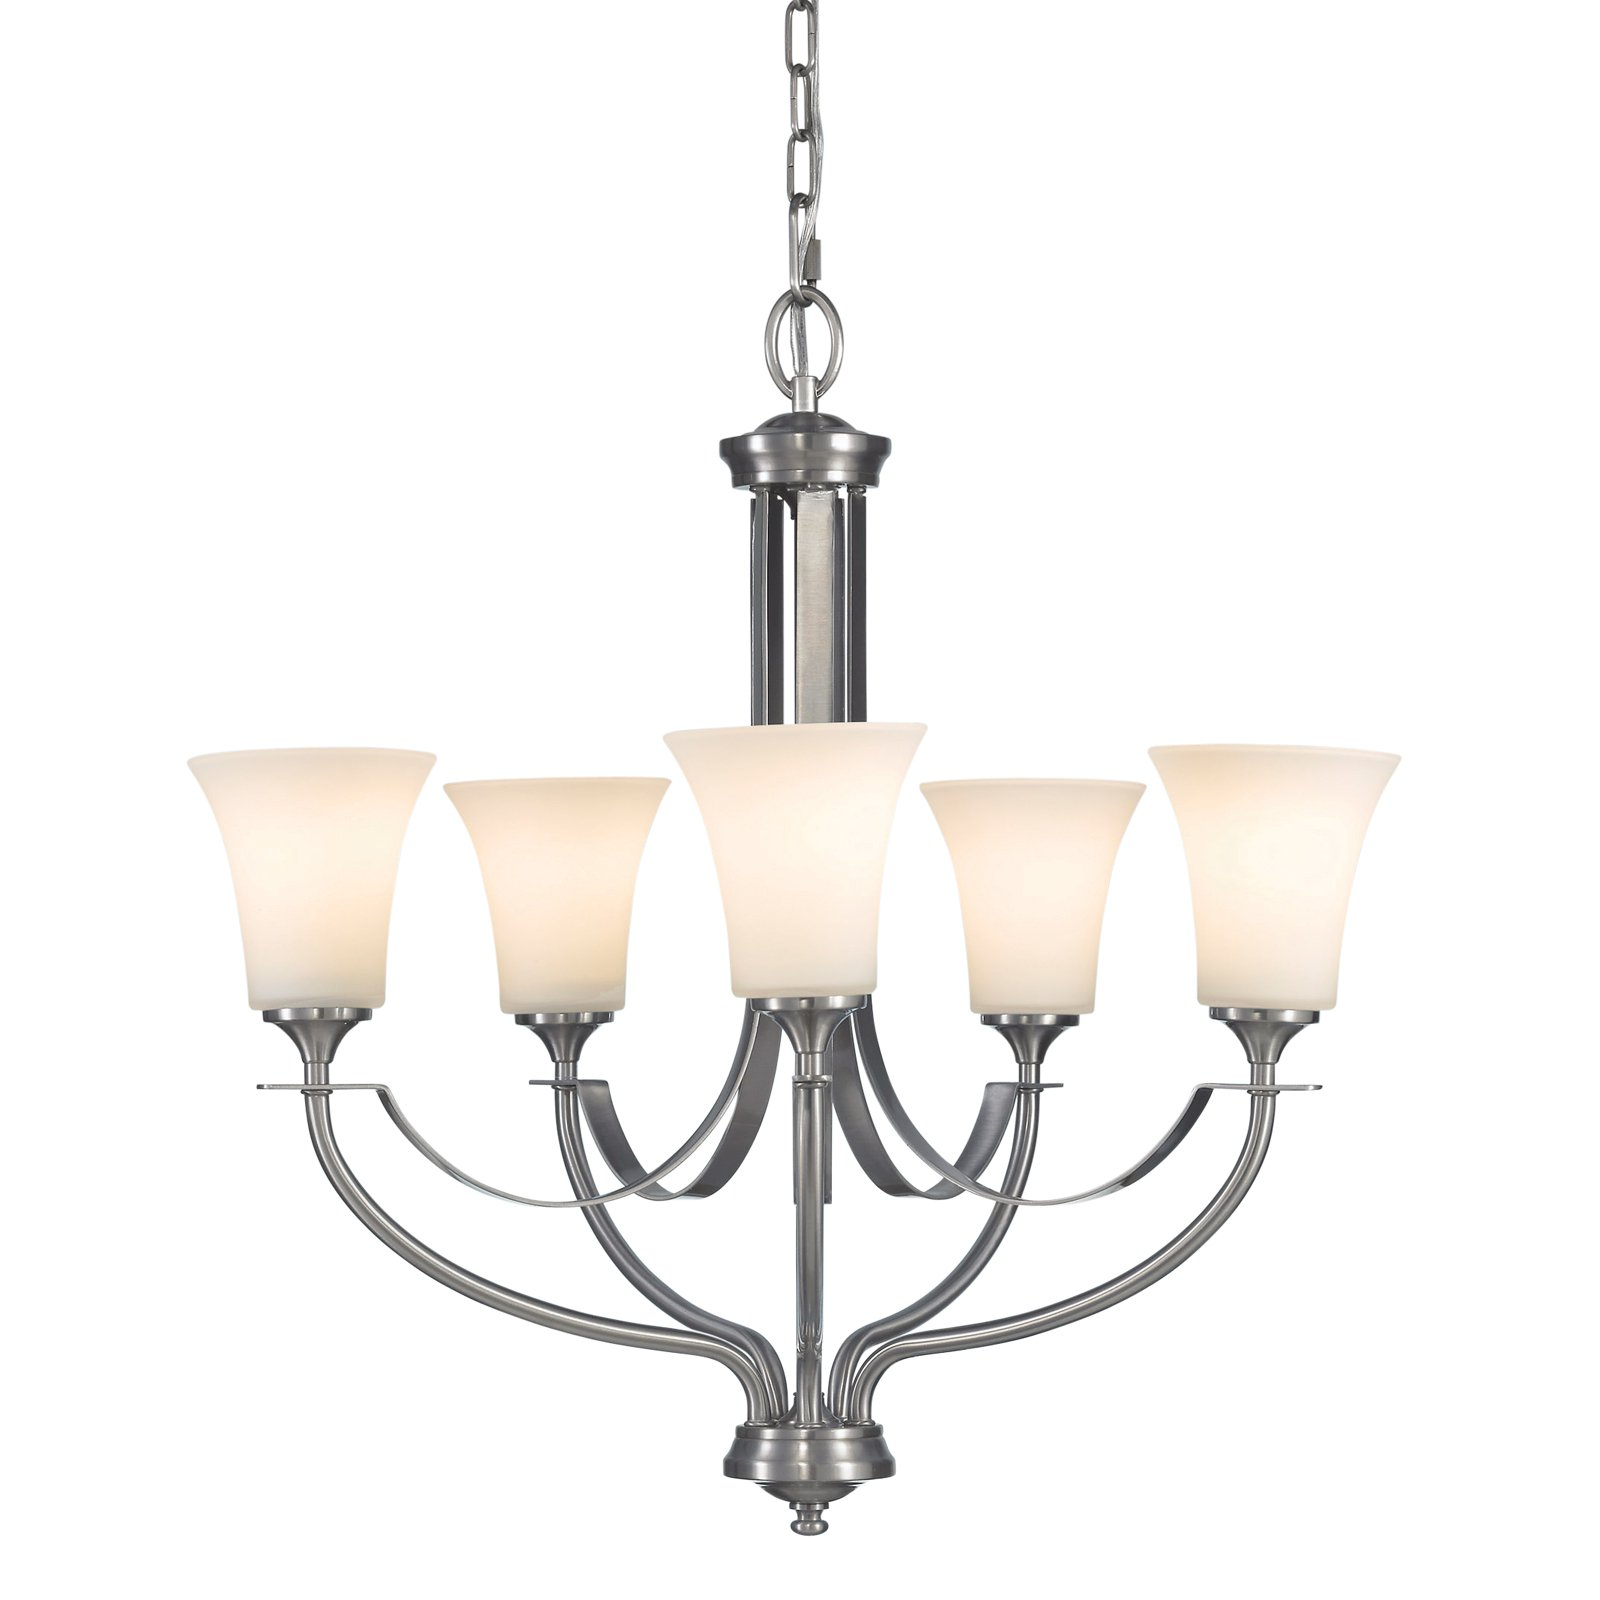 Feiss Barrington Chandelier 25.5W in. Brushed Steel by Murray Feiss